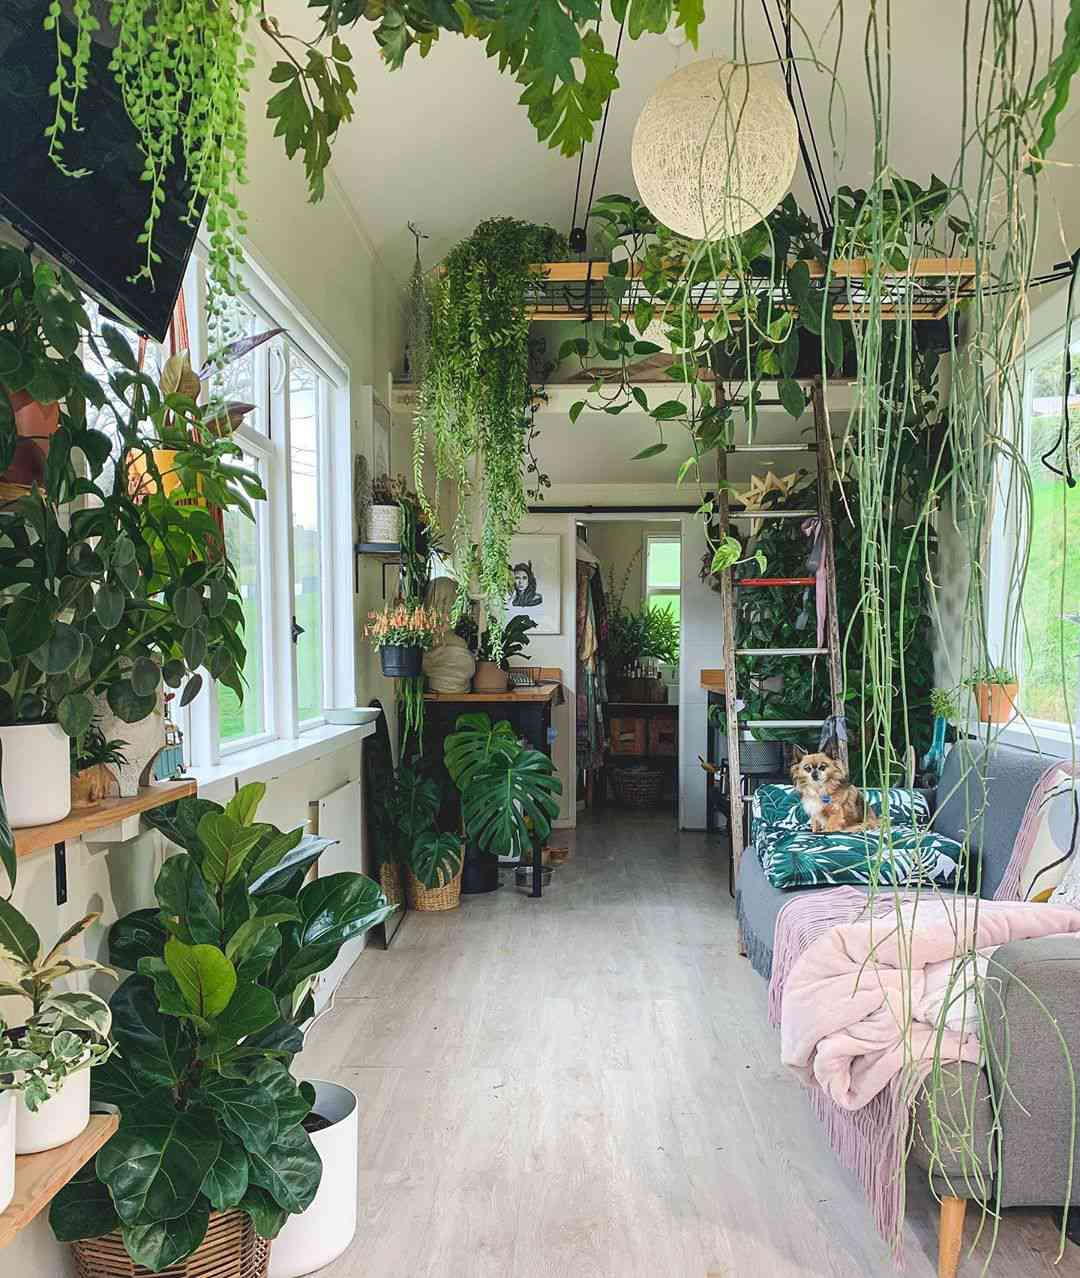 Tiny house filled with plants